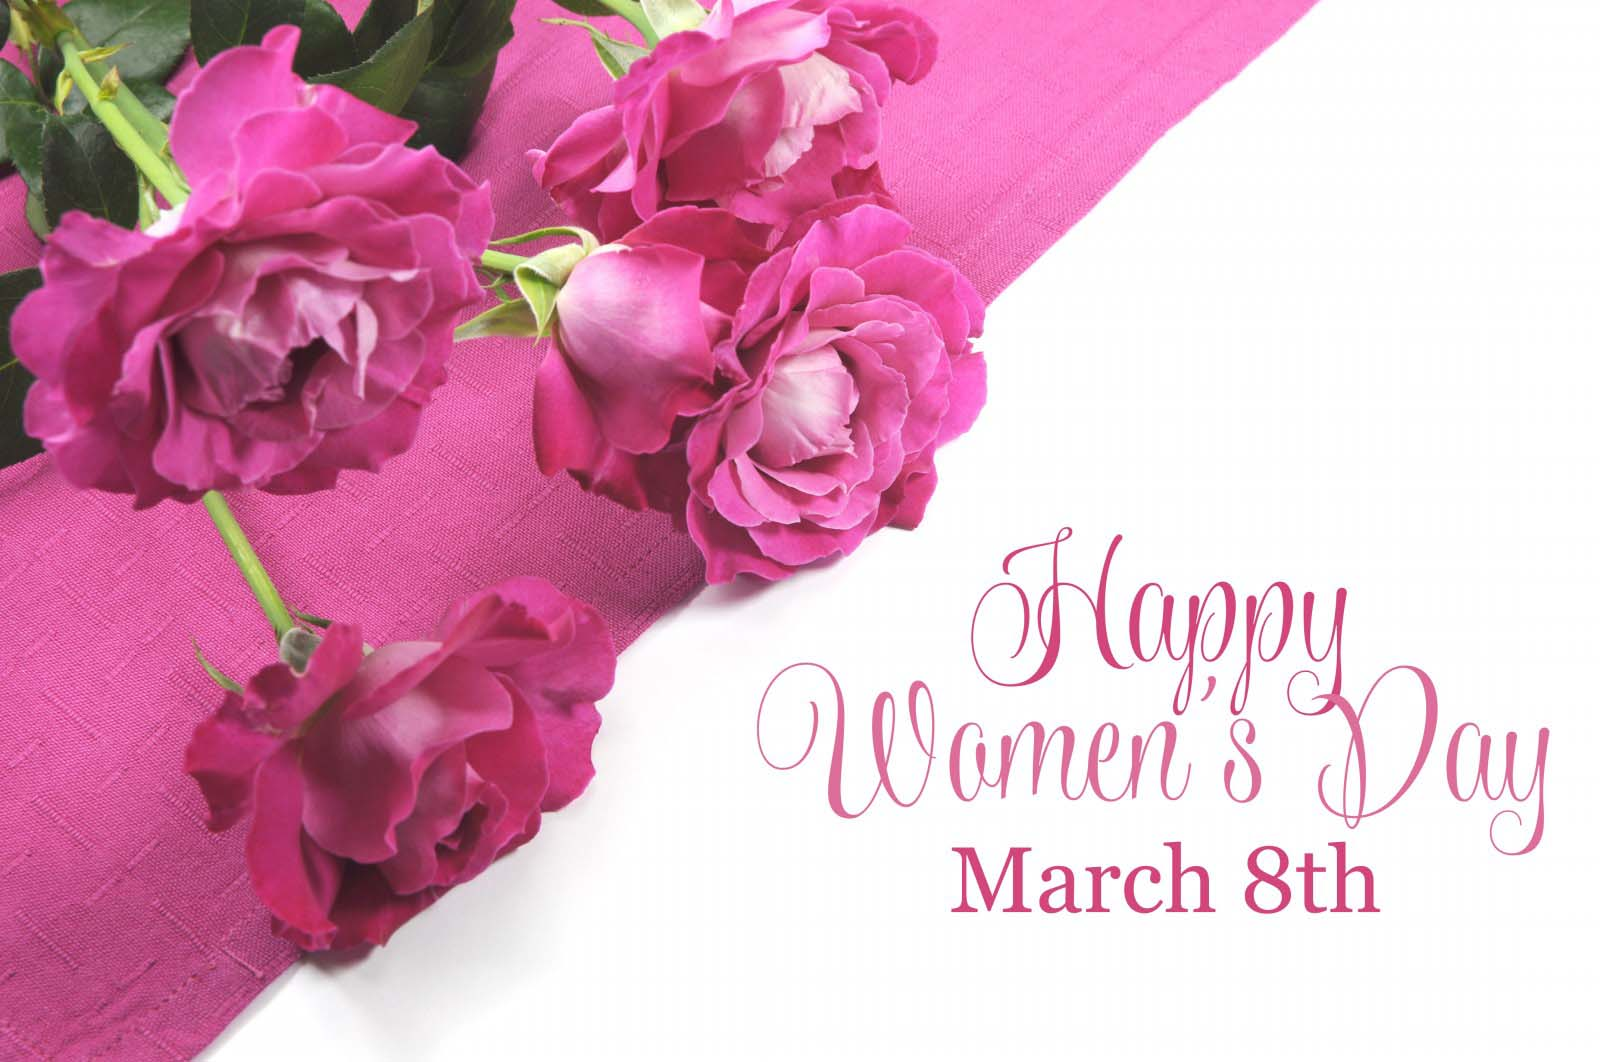 International-Womens-Day-March-8-2014-Wallpaper-1600x1062